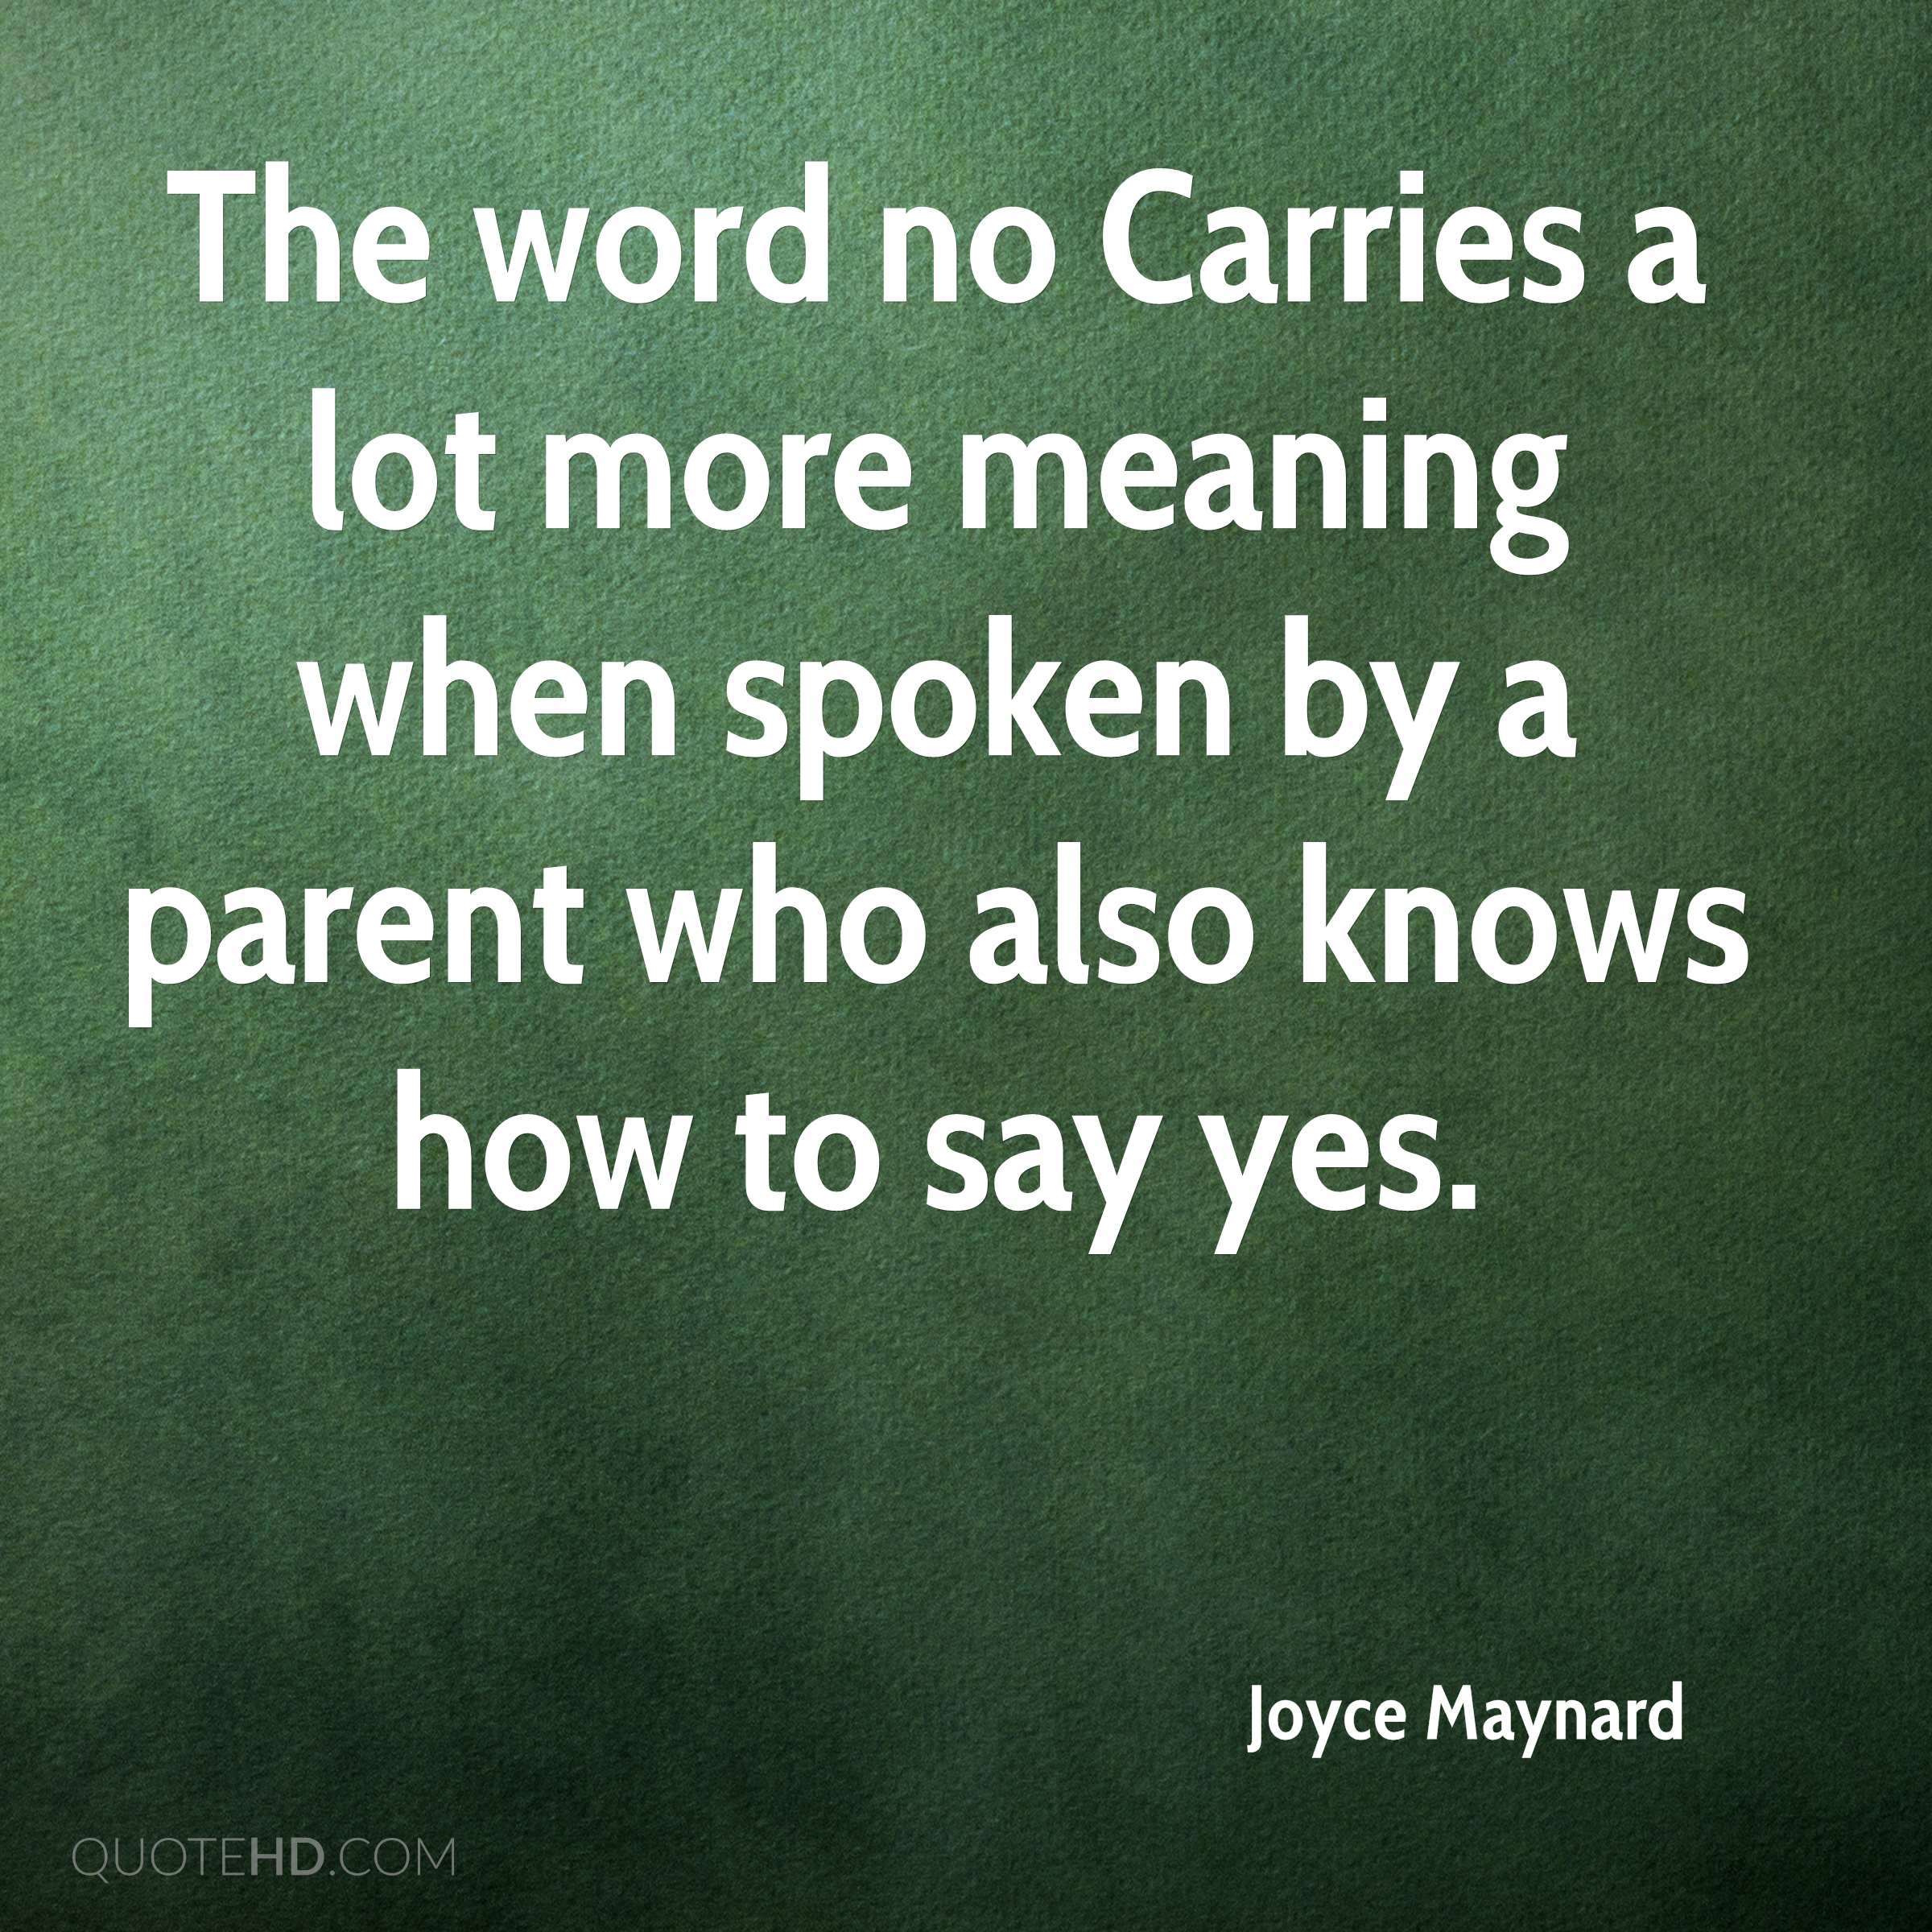 The word no Carries a lot more meaning when spoken by a parent who also knows how to say yes.